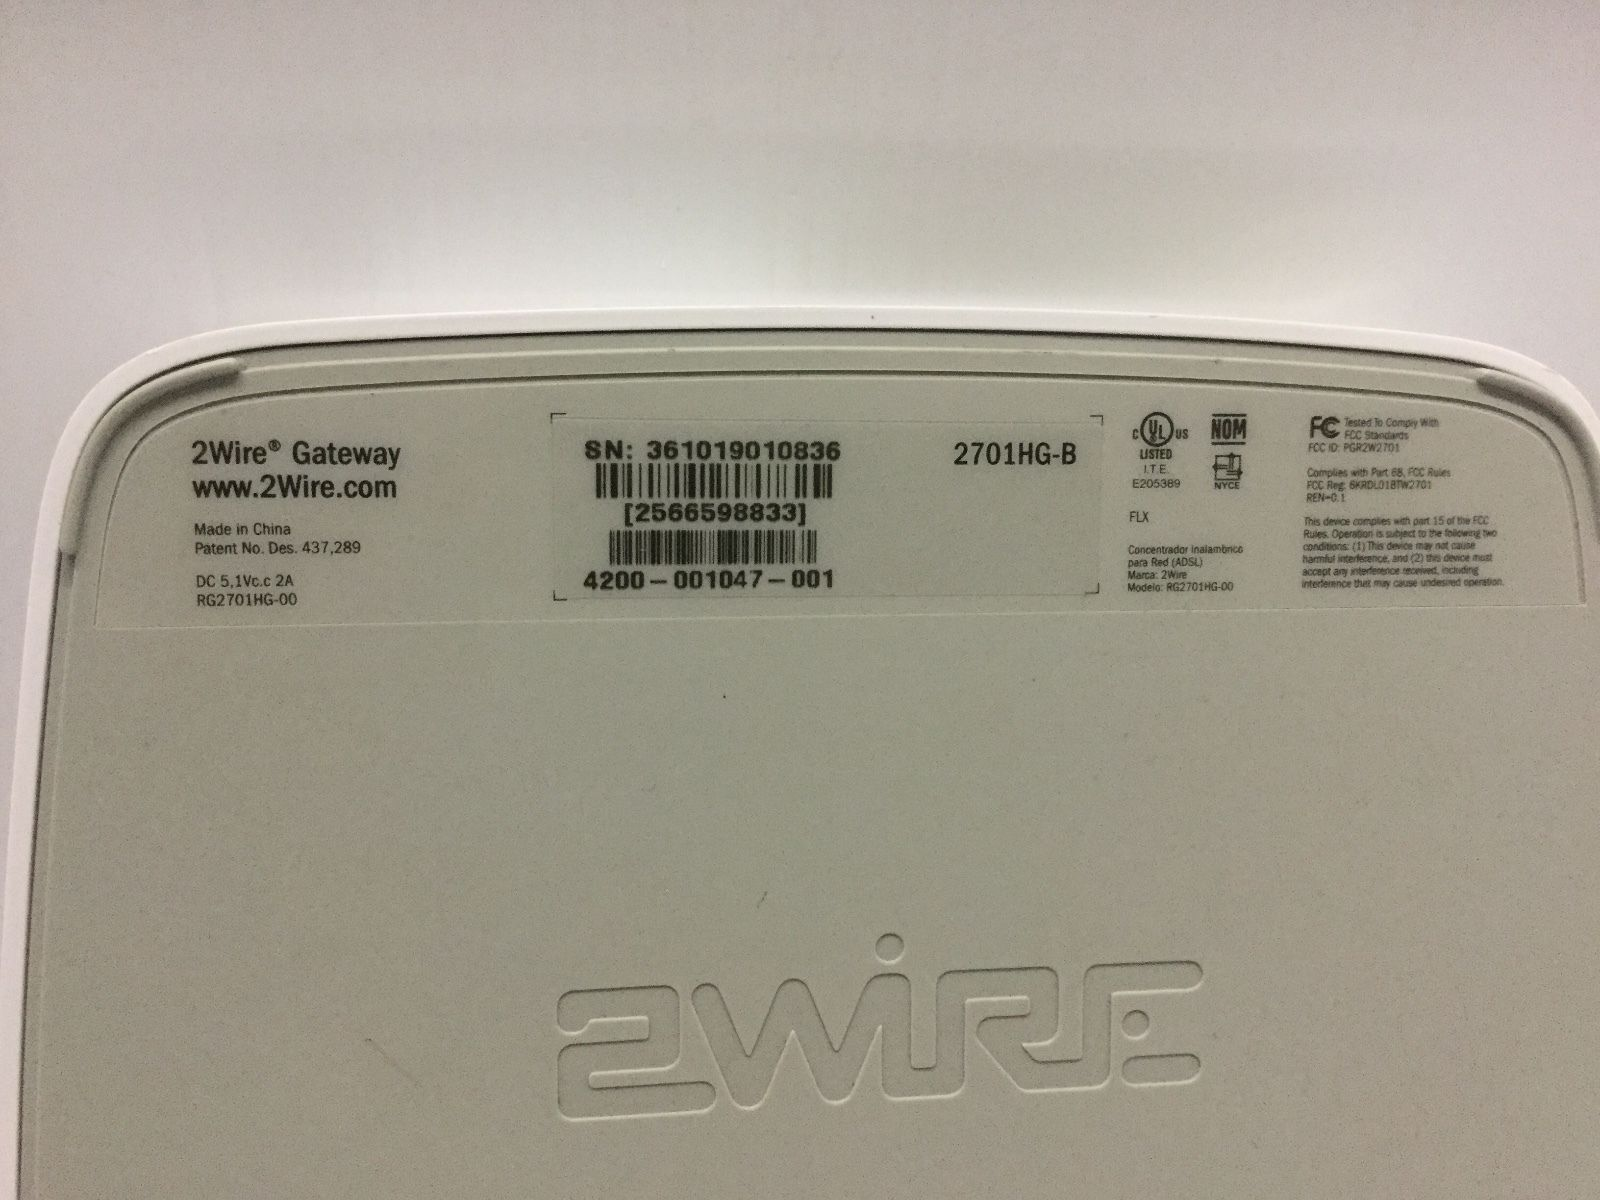 AT&T ATT 2701HG-B 2Wire Wireless Gateway DSL and 50 similar items